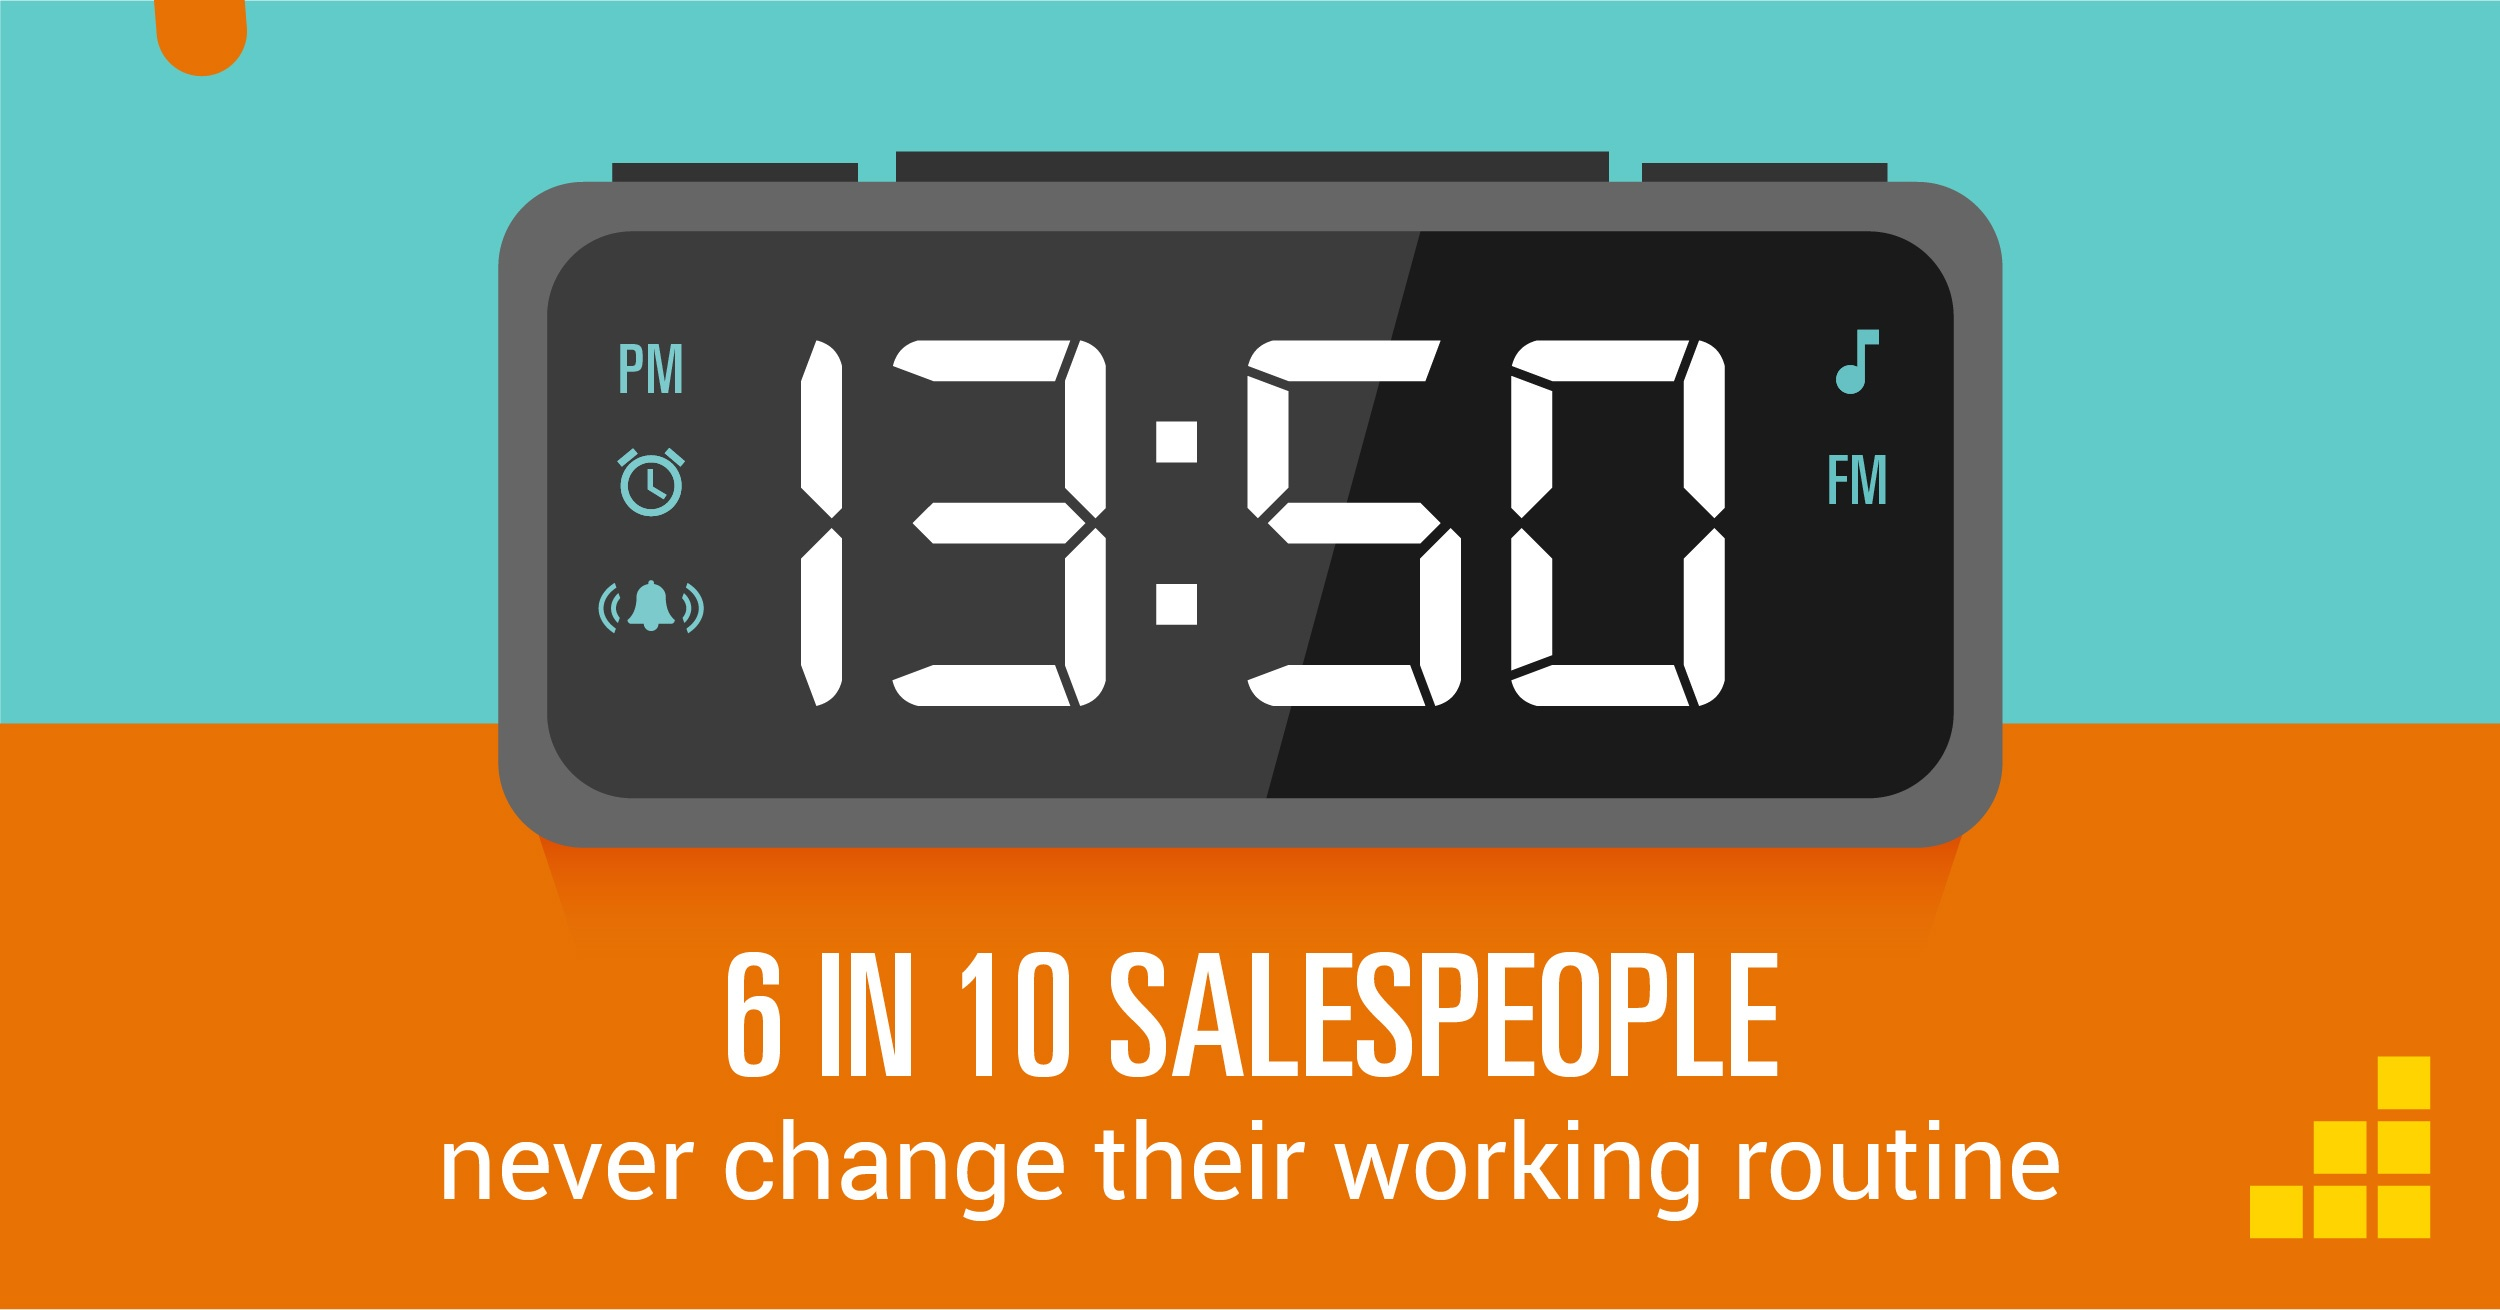 6 in 10 sales people never change their working routine - sales productivity